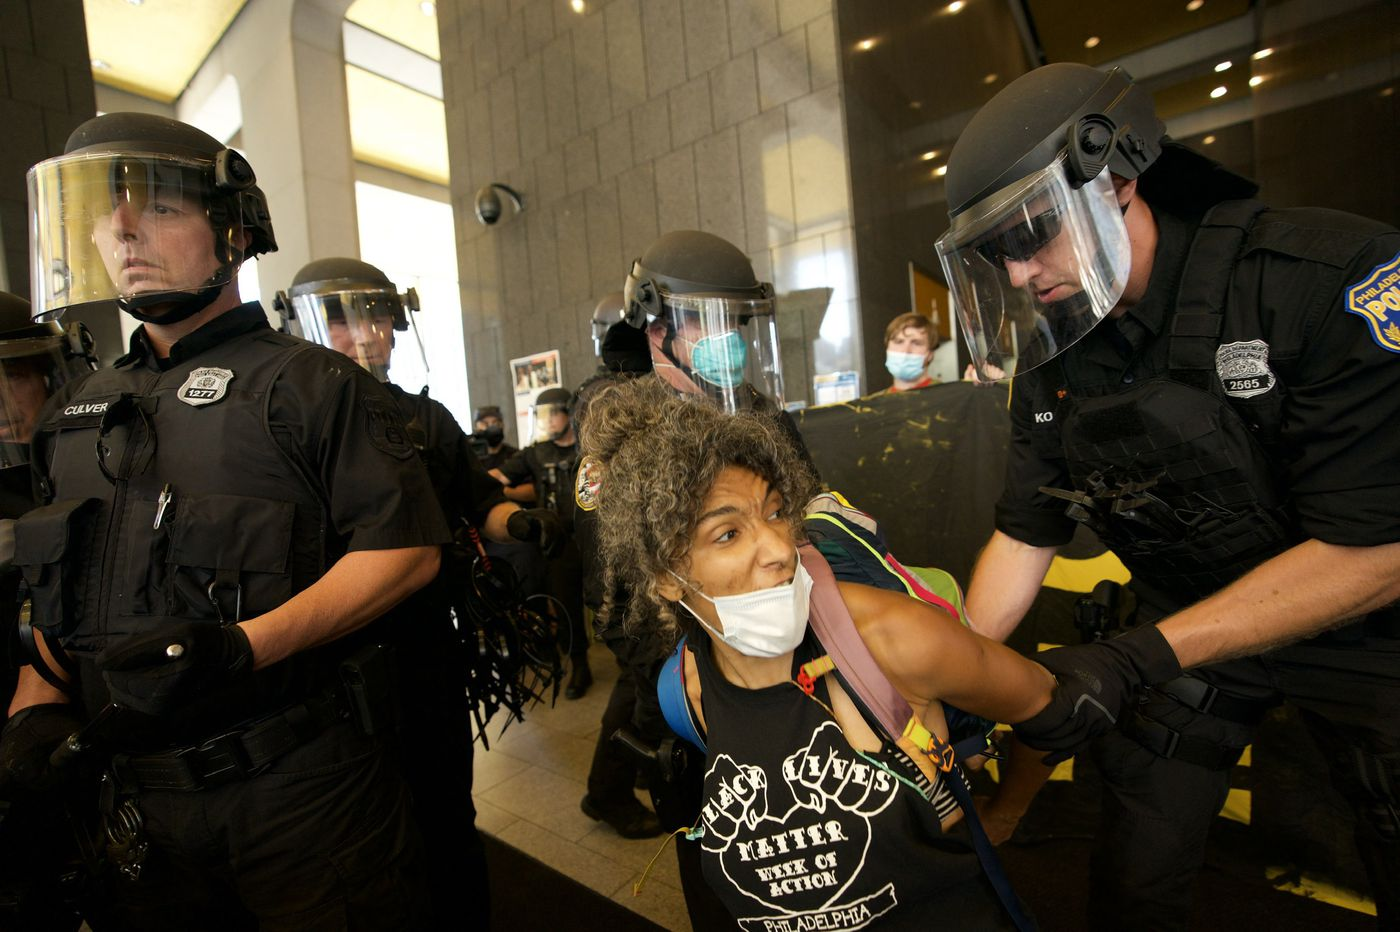 Officers detain protesters calling for Philly to defund police at Municipal Services Building